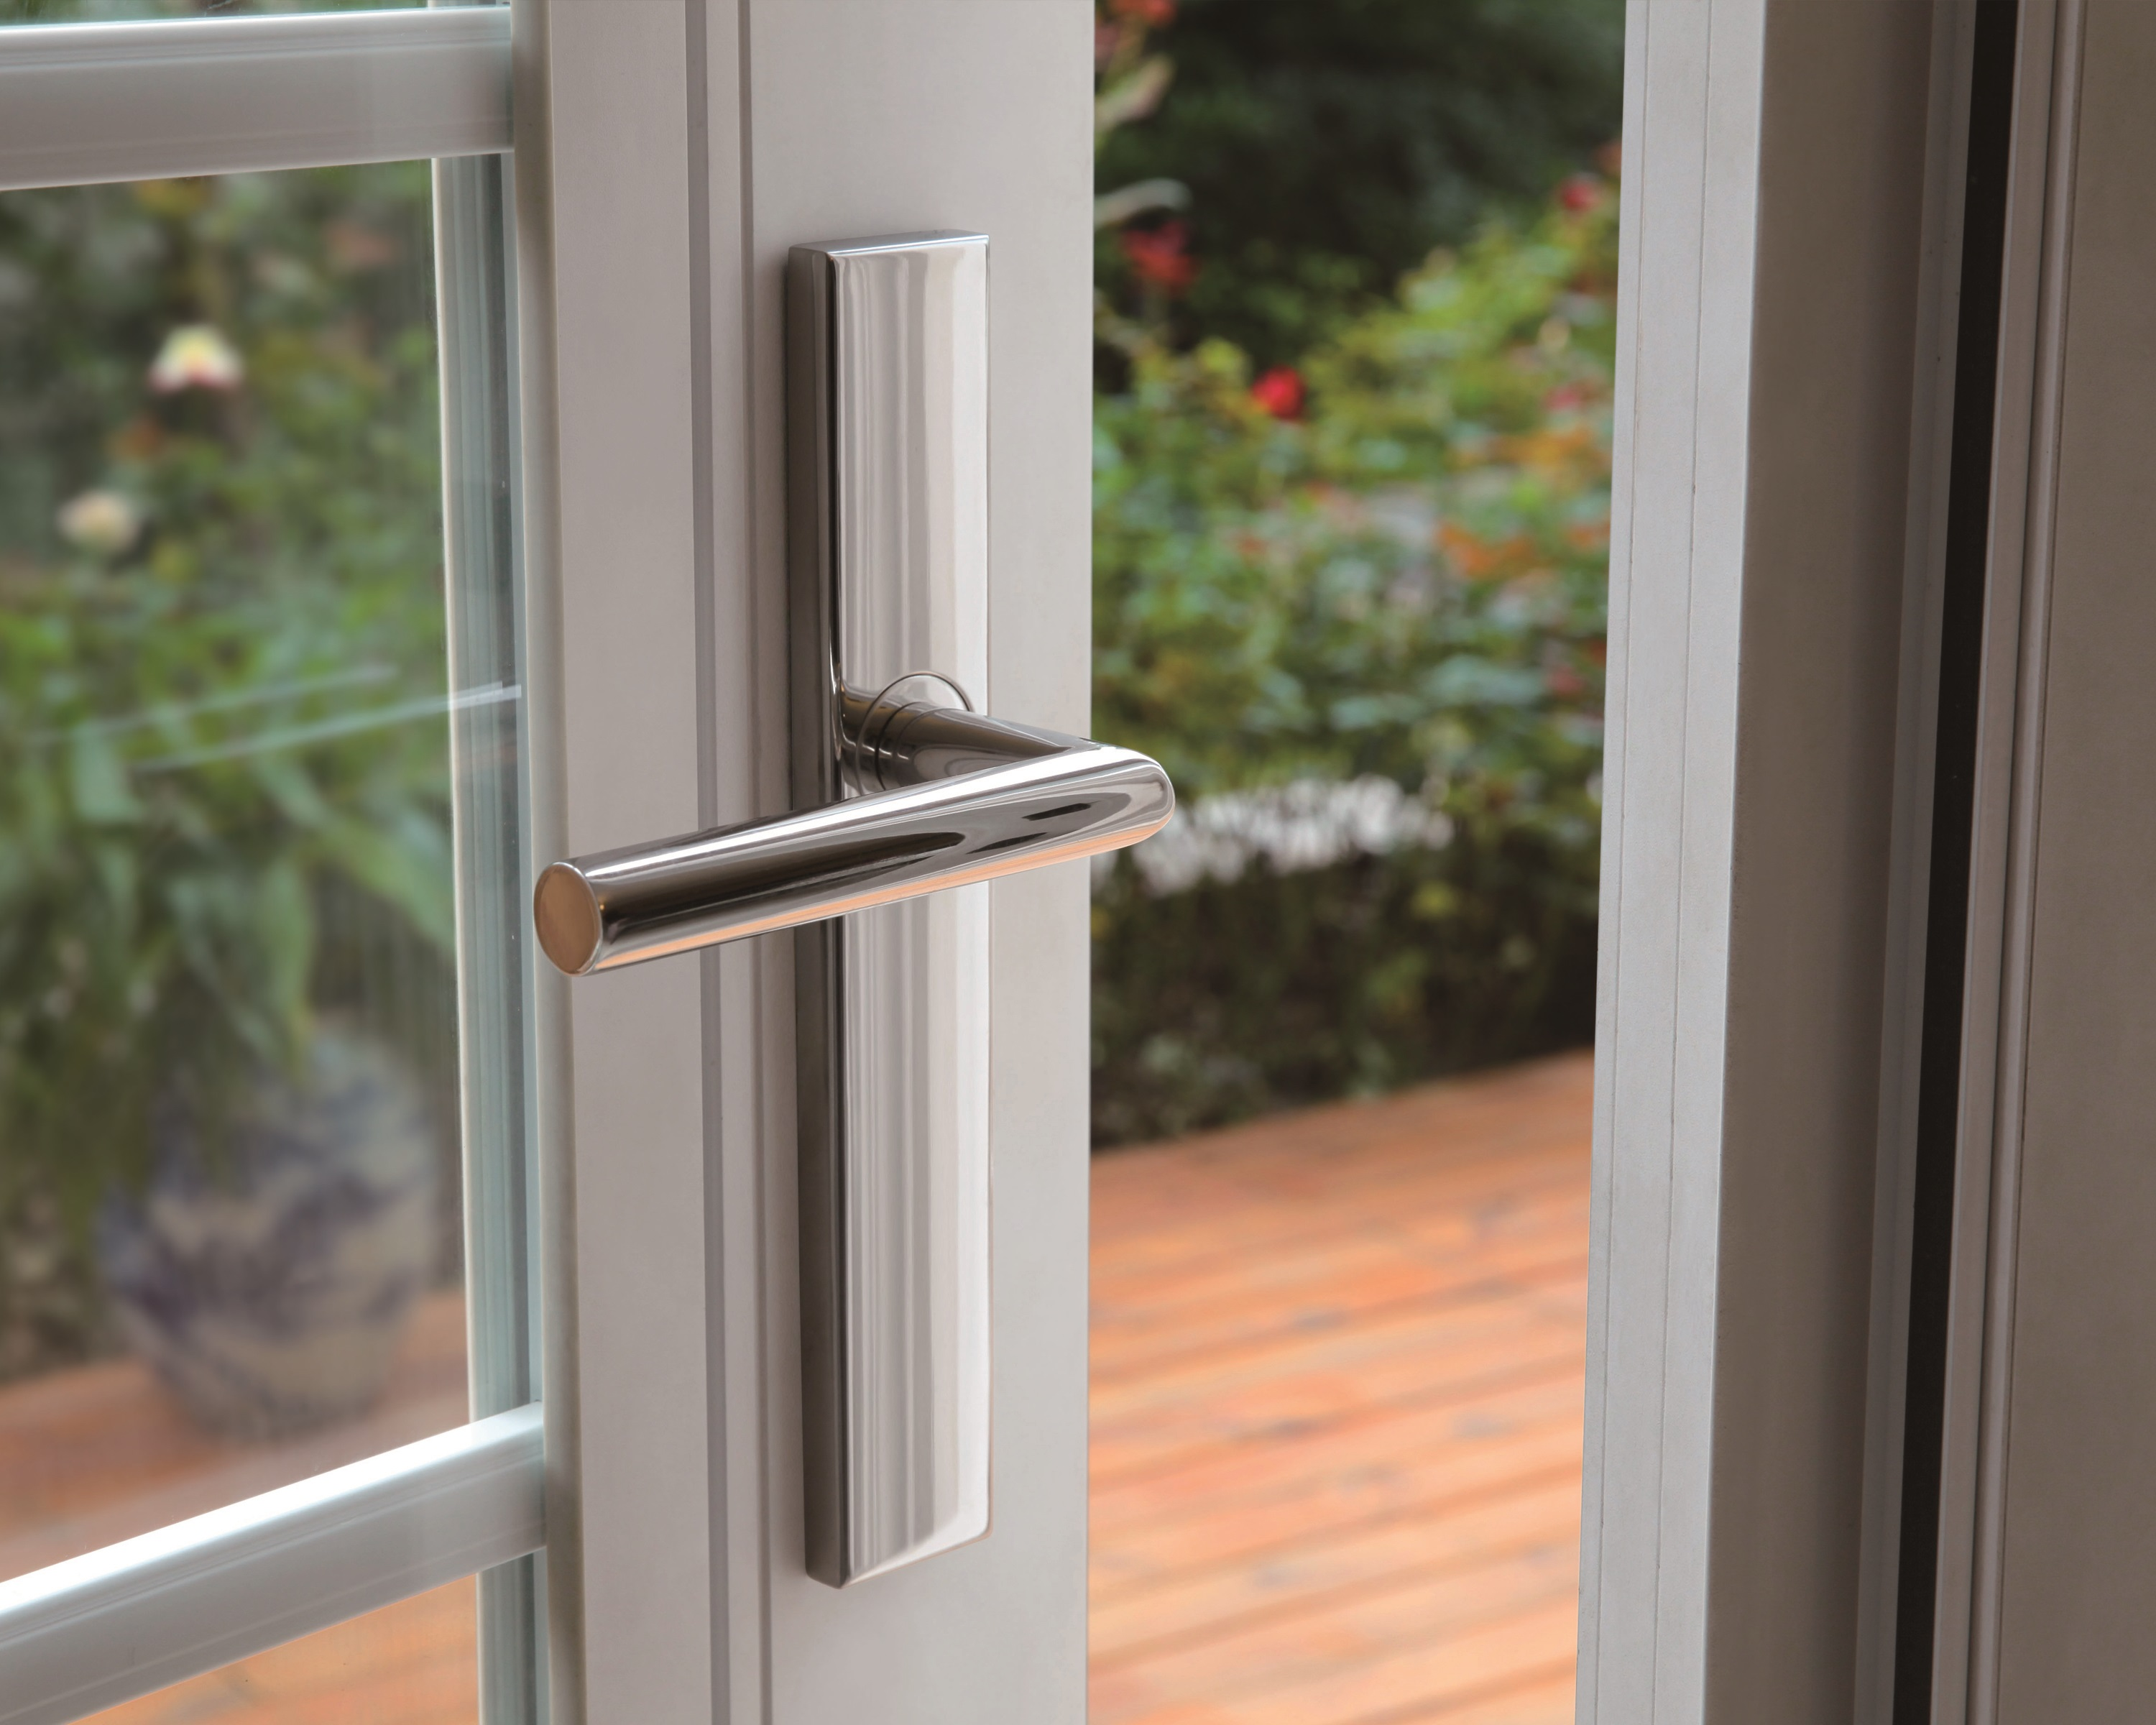 Delicieux INOXu0027s New Patent Pending Universal Multipoint Series Is A Trim Solution  Designed To Fit 95% Of Multipoint Locking Systems For Swing Doors By Major  Door ...